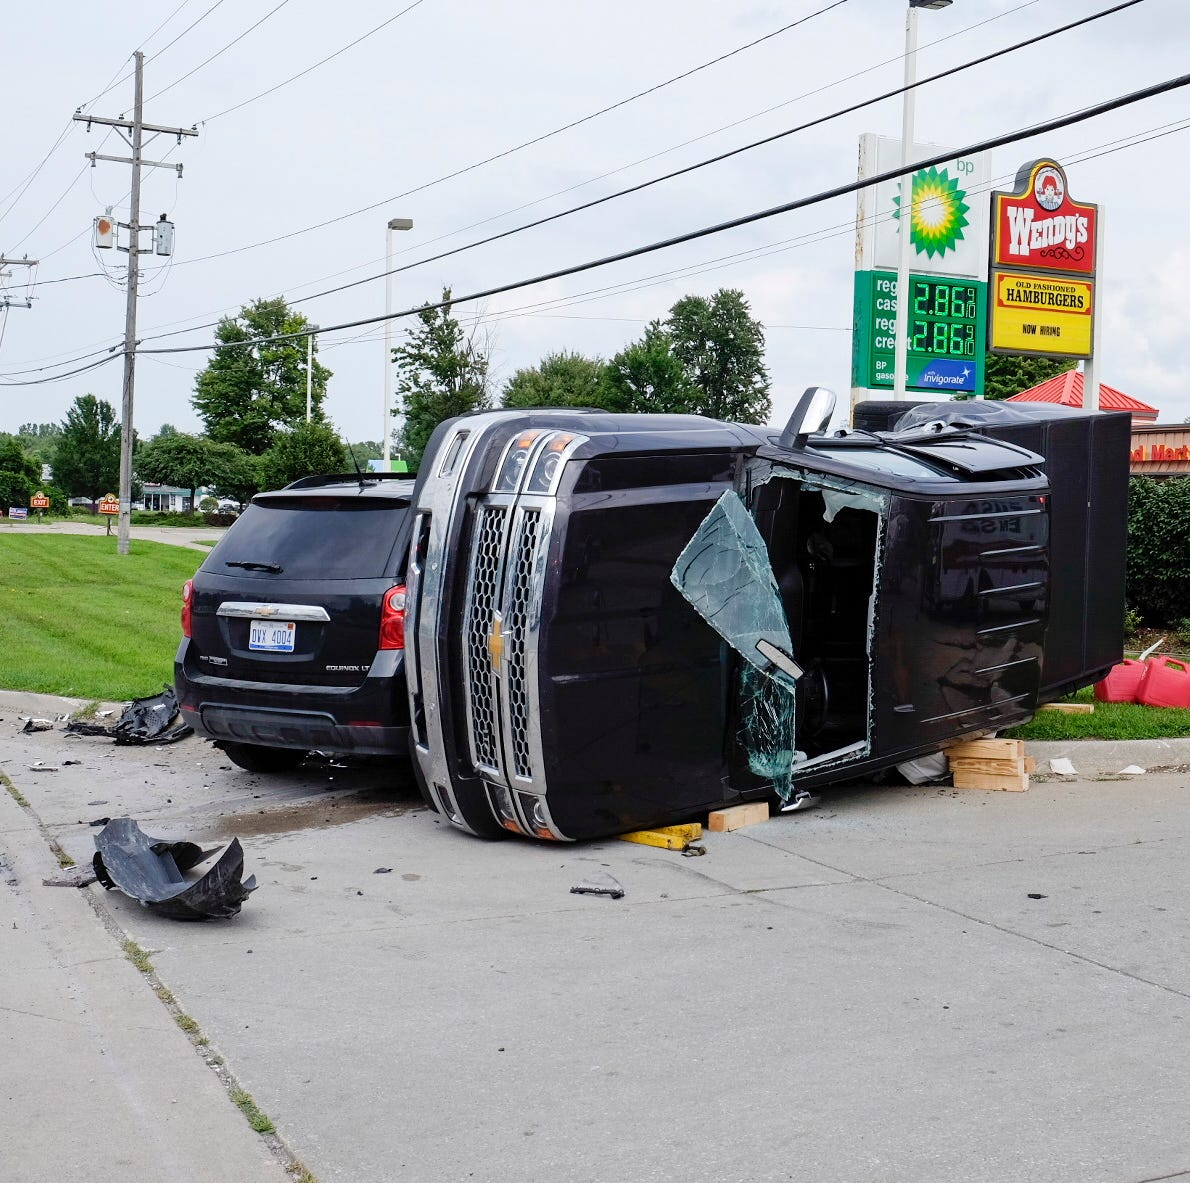 Minor injuries in Wadhams Road crash